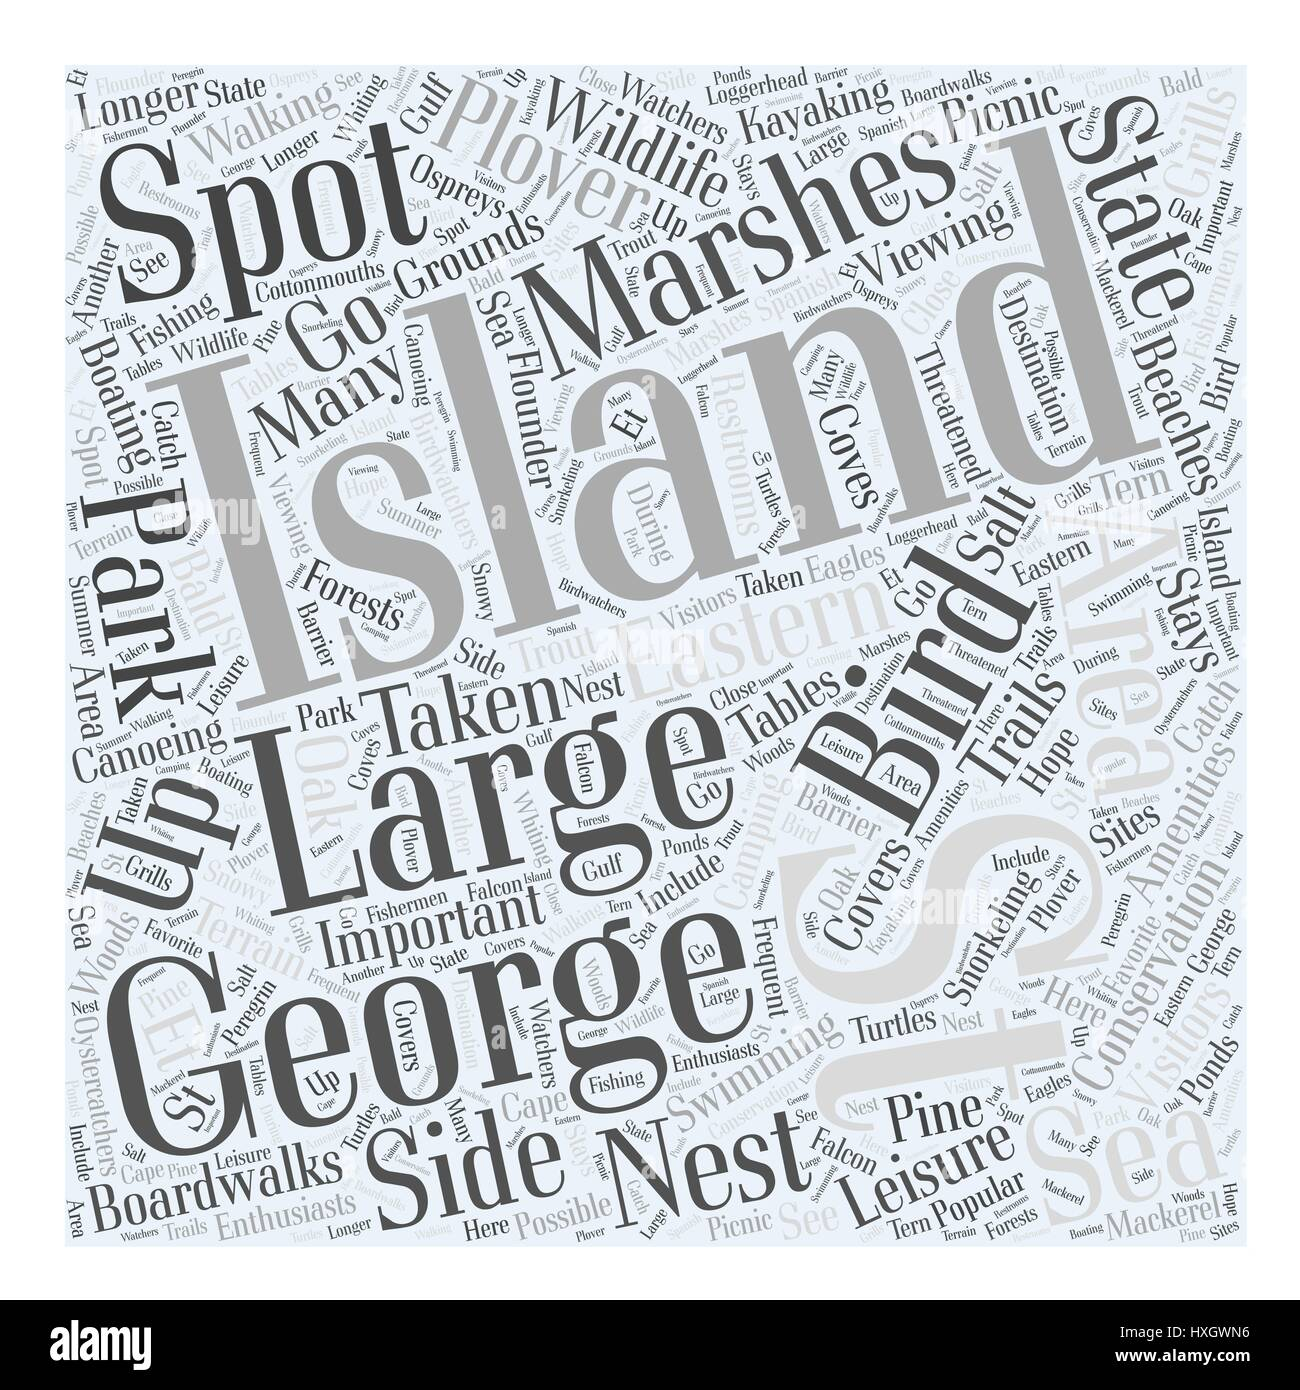 st george island Word Cloud Concept - Stock Vector